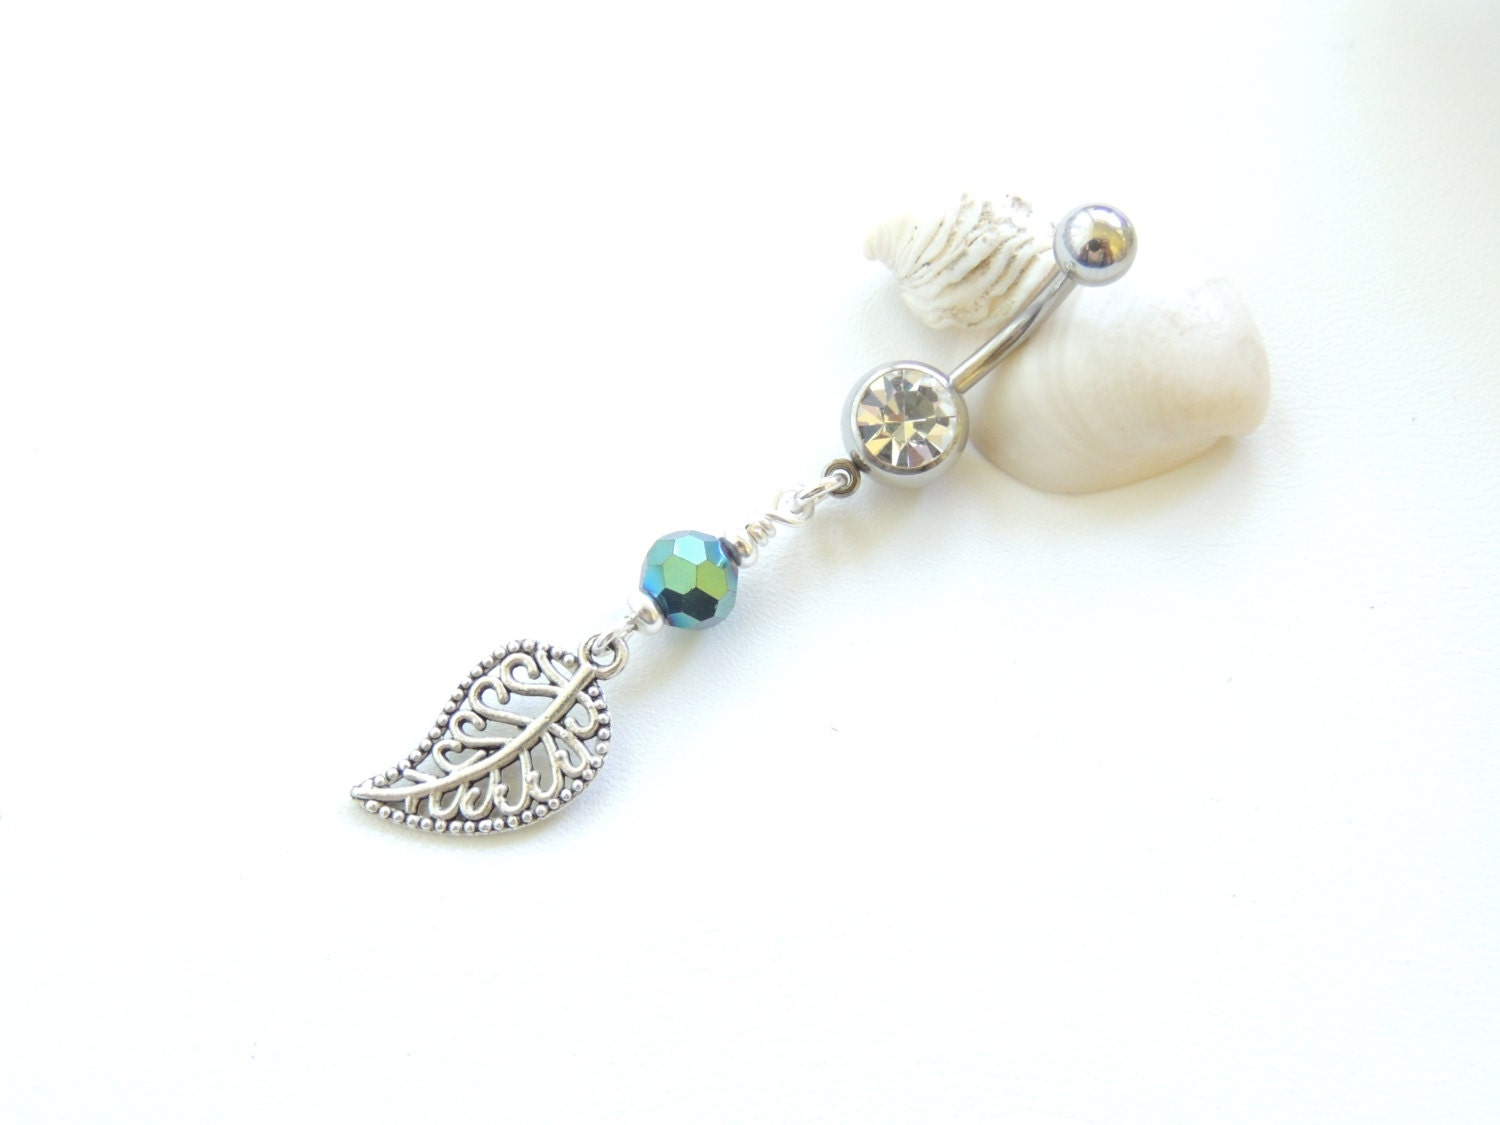 silver leaf belly button ring belly button jewelry 14g